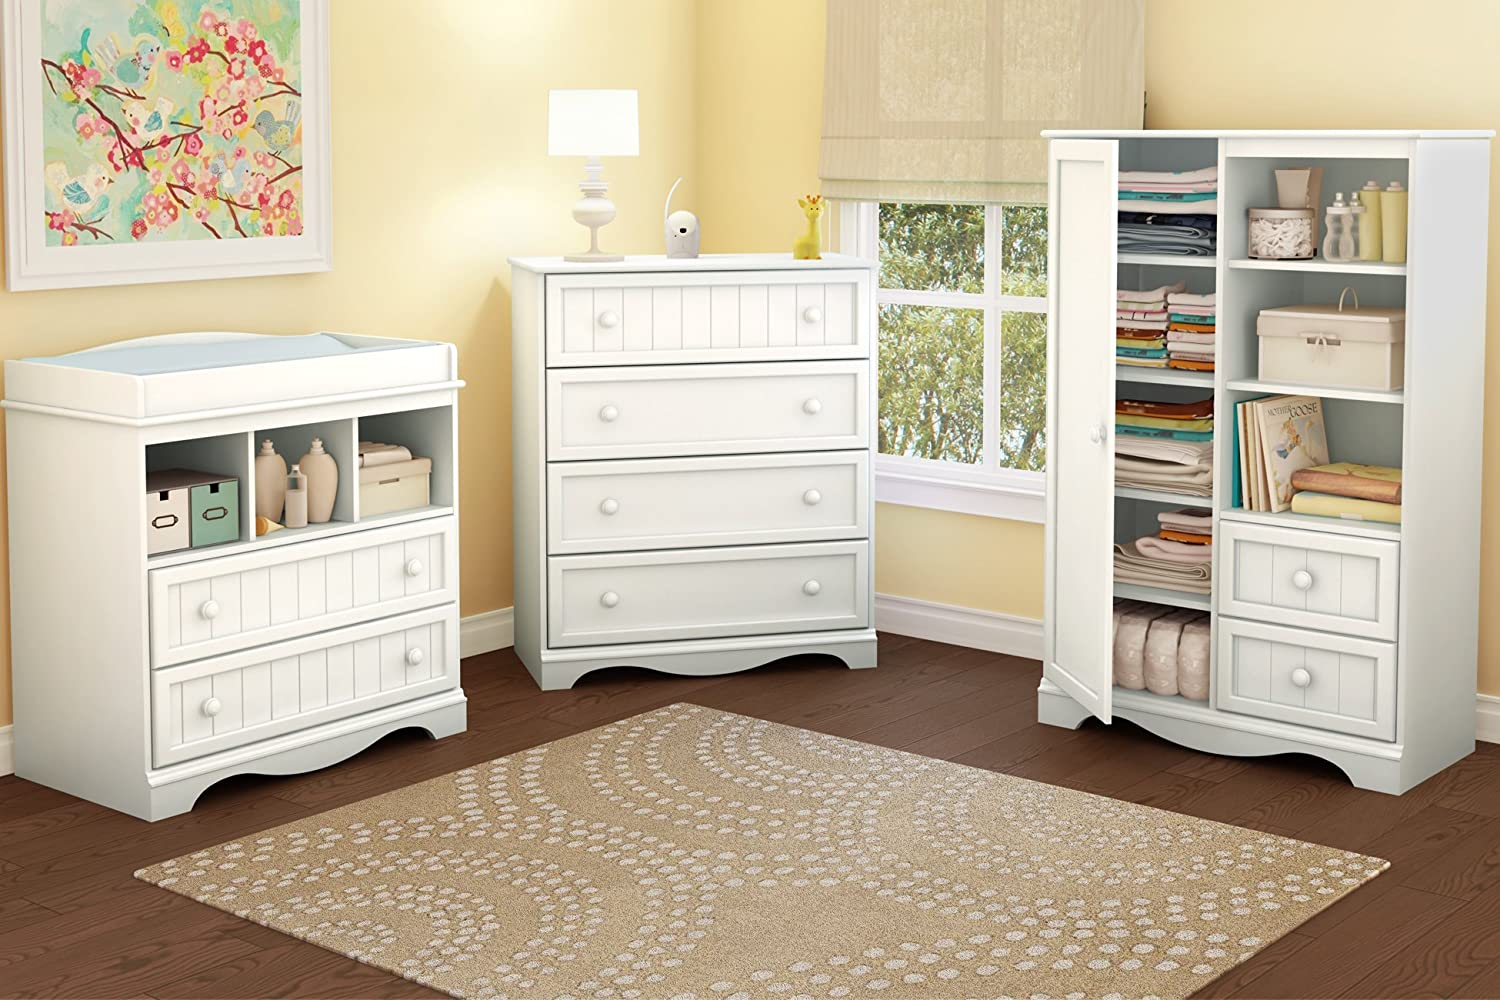 Amazon.com : South Shore Savannah 2 Drawer Changing Table, Pure White :  South Shore White Changin : Baby Amazing Pictures